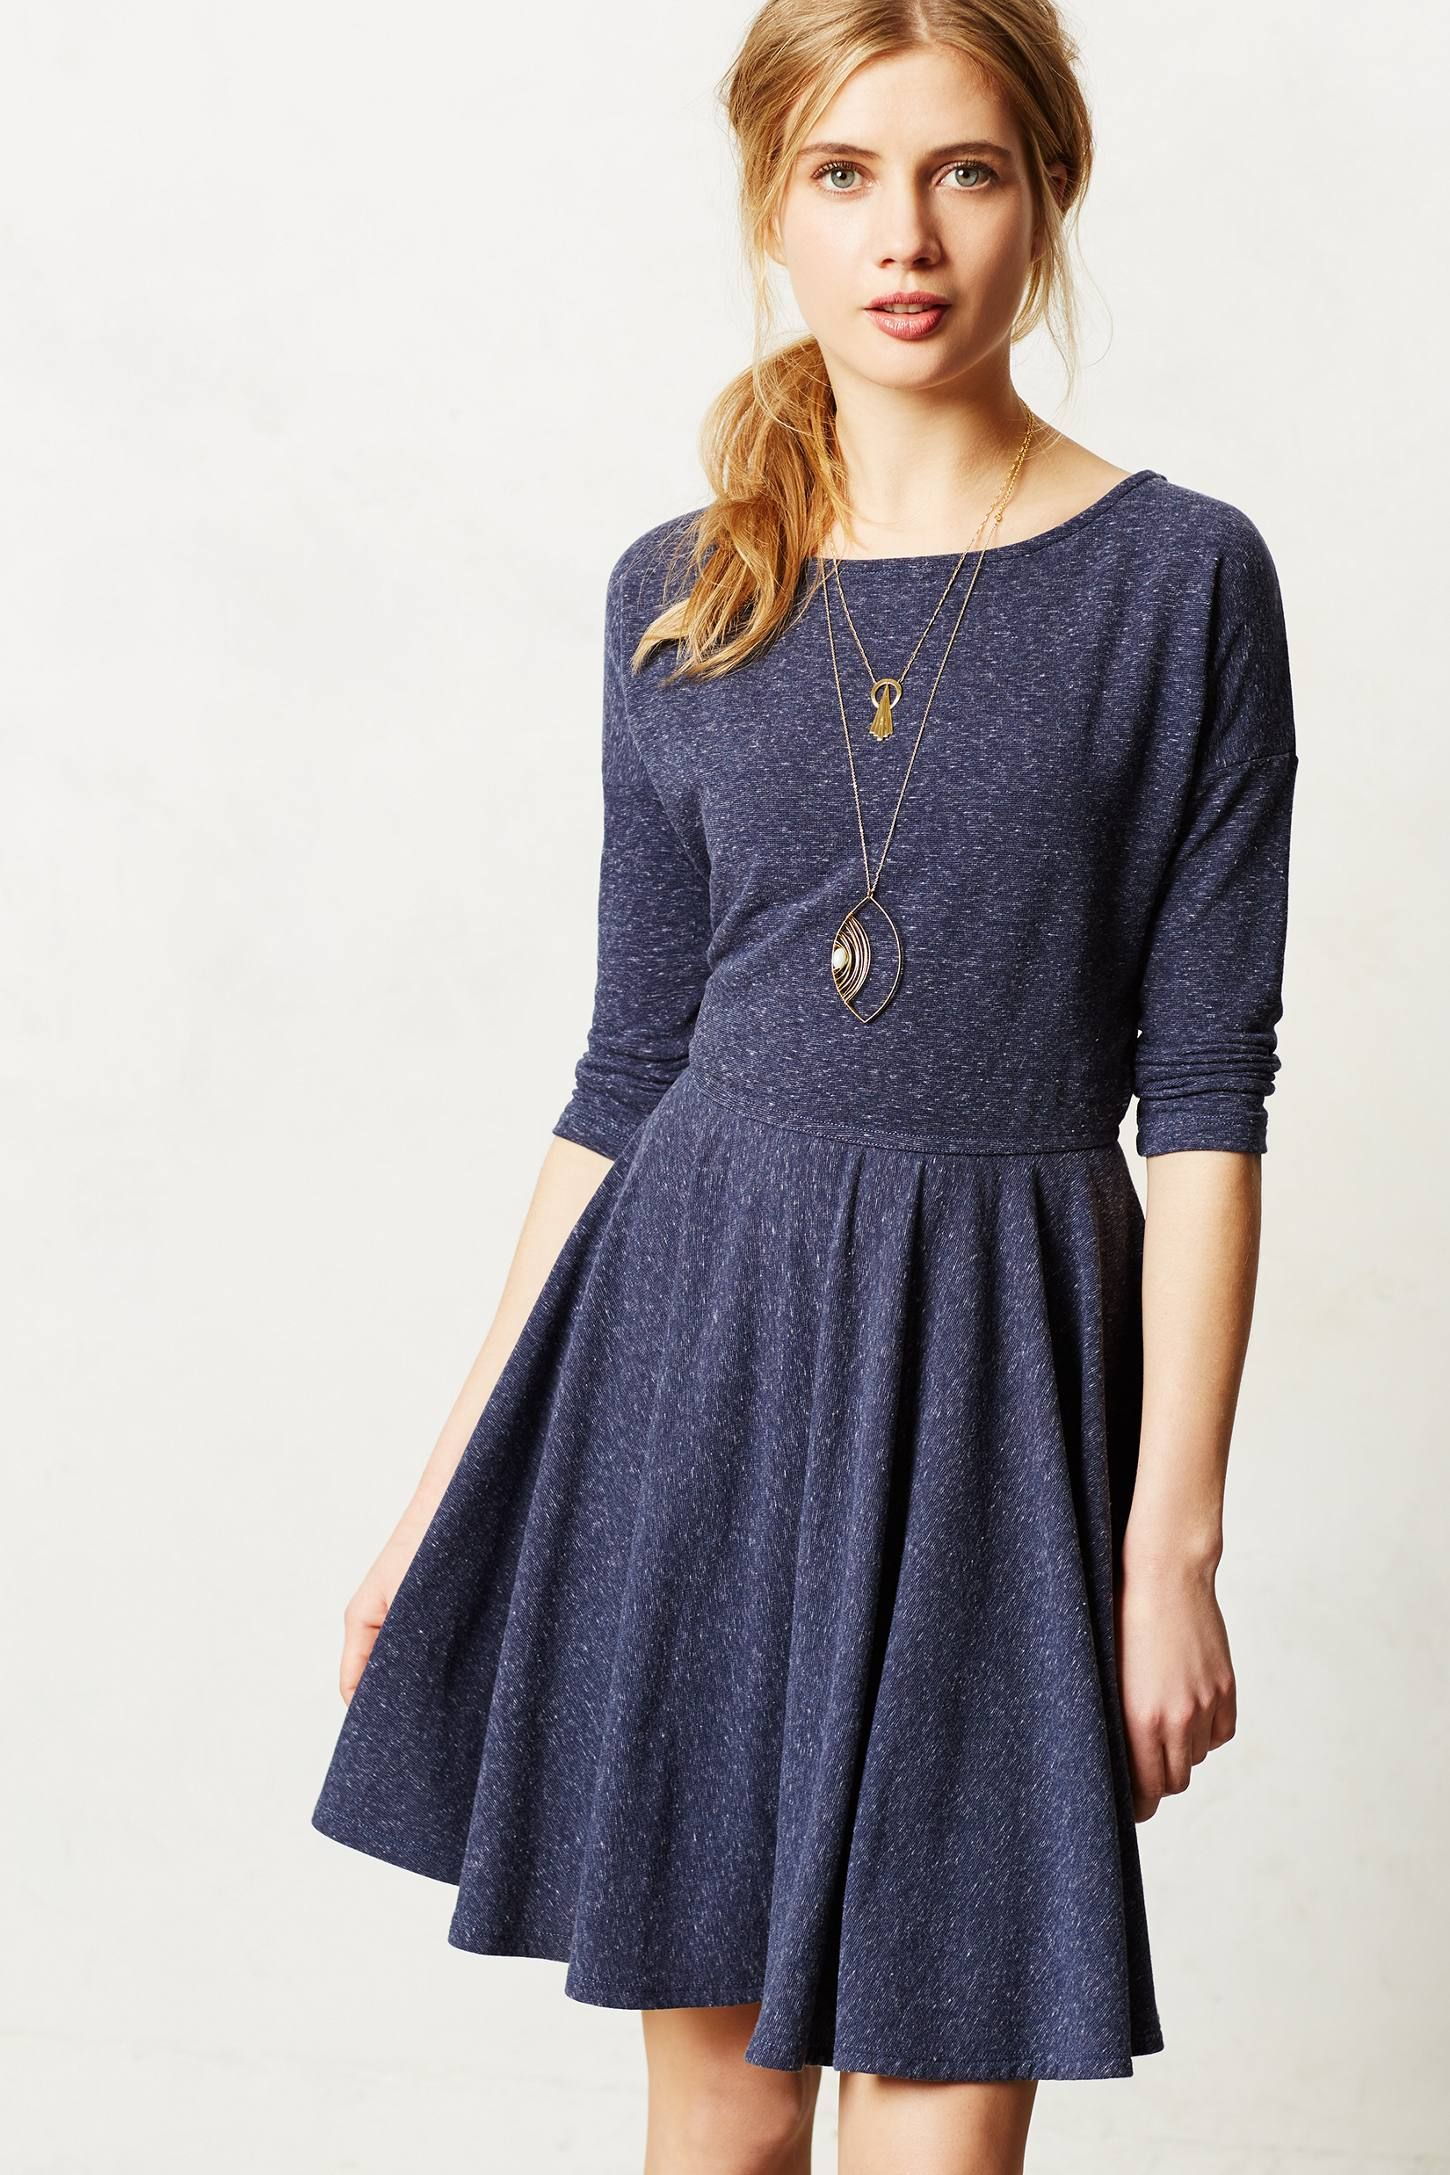 Midday Dress - Anthropologie. ♥ | Coisas para usar | Pinterest ...